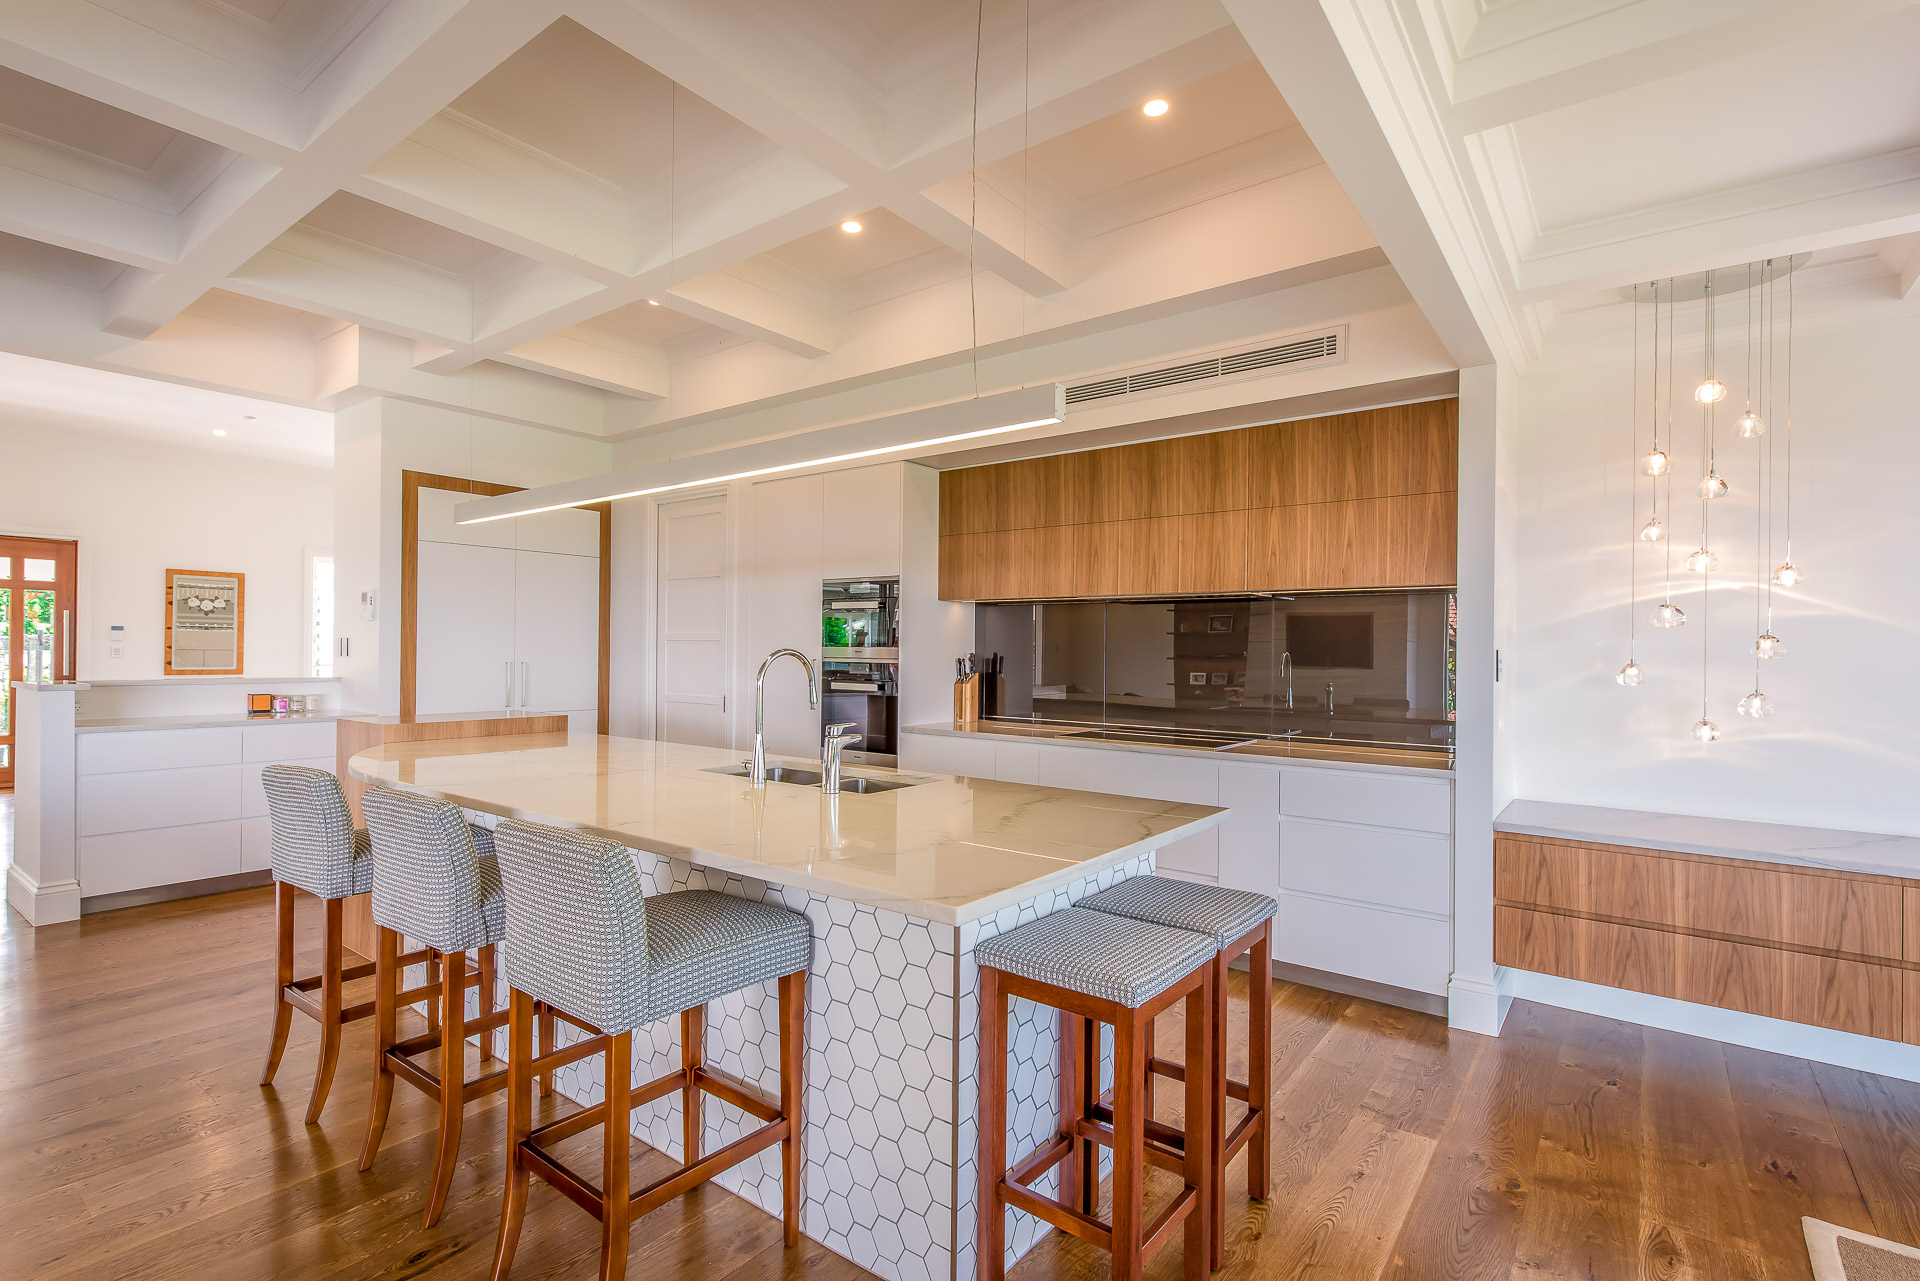 Luxury kitchen, integrated fridge, white granite, miele, luxury interiors, minka joinery, Cowan Constructions, brisbane, queensland